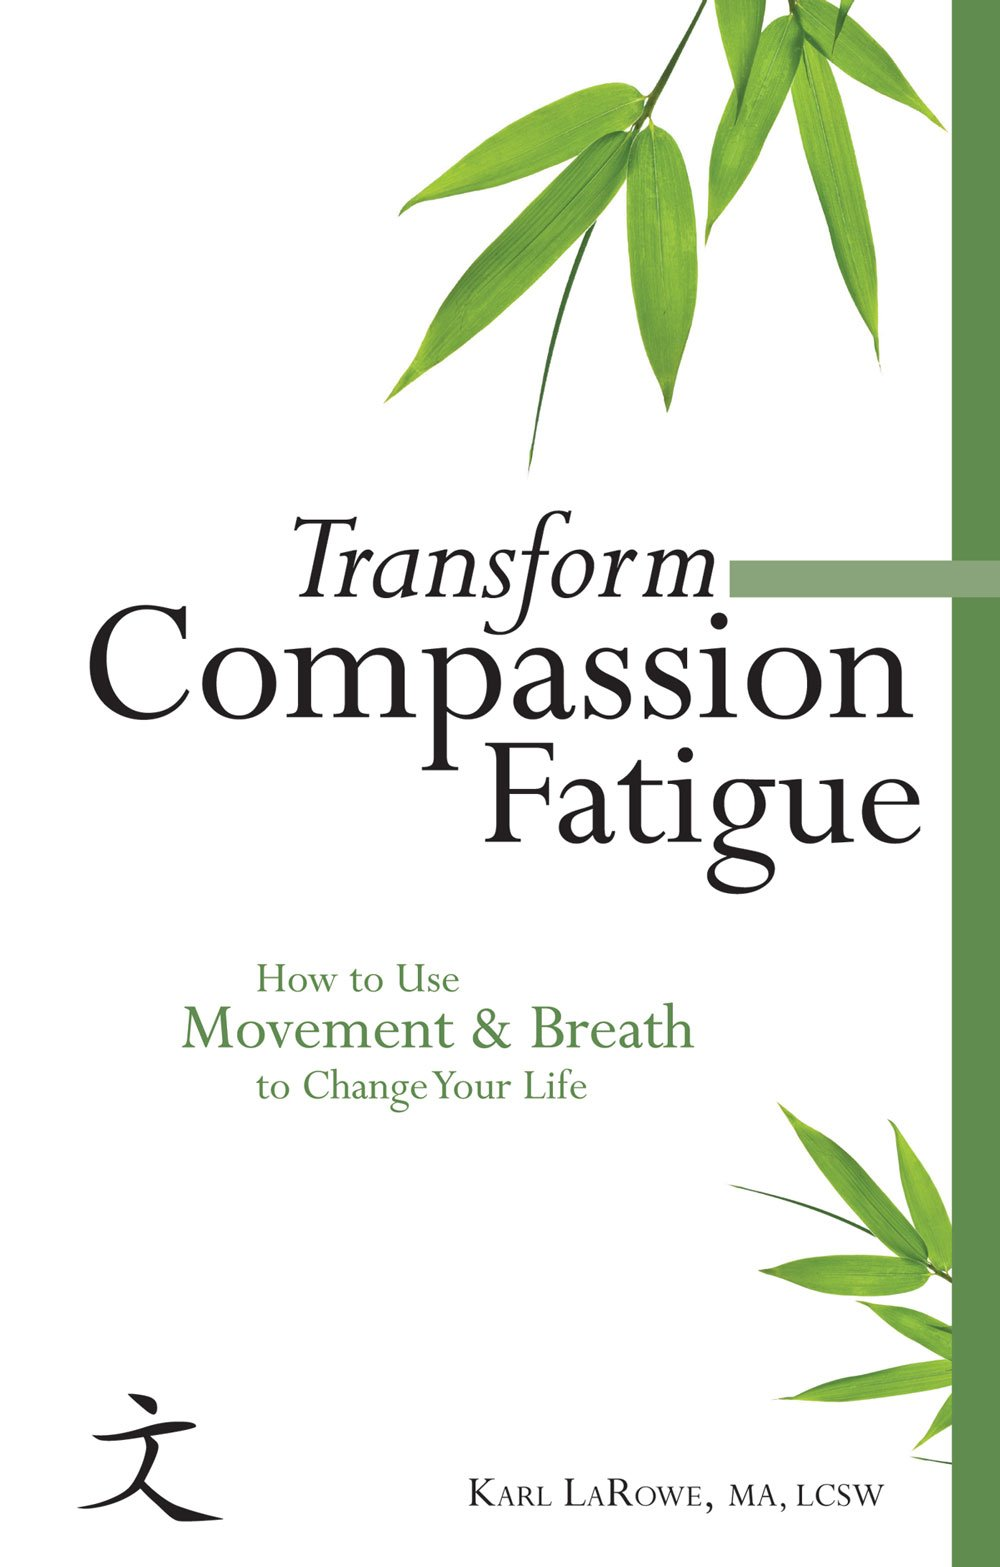 Download Transform Compassion Fatigue: How to Use Movement & Breath to Change Your Life pdf